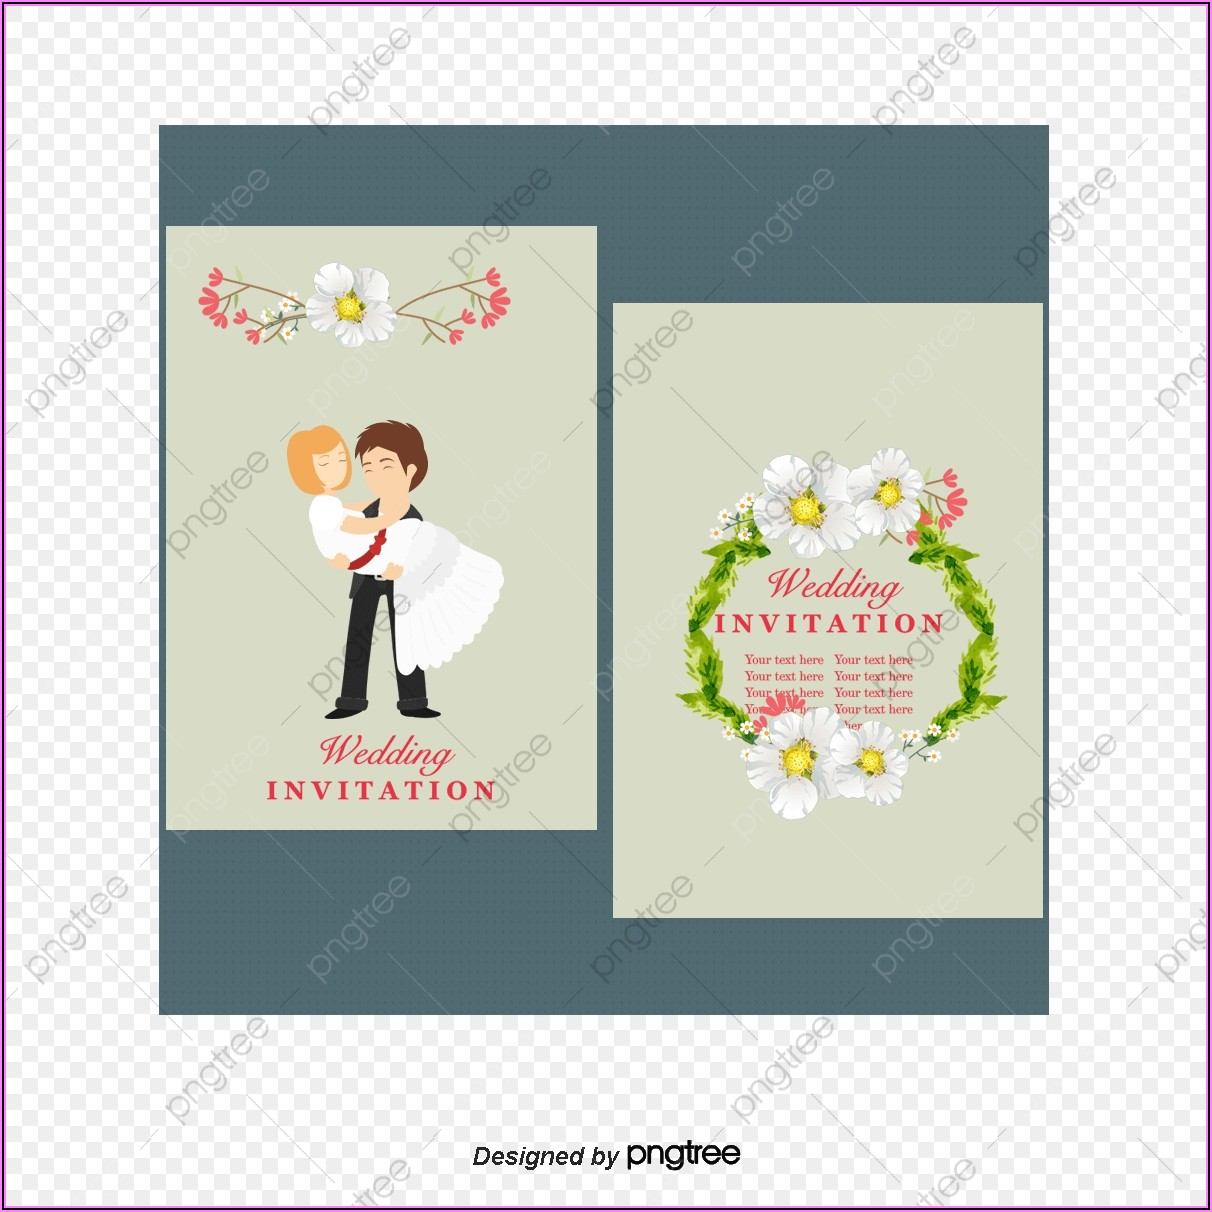 Wedding Invitation Card Template Free Download